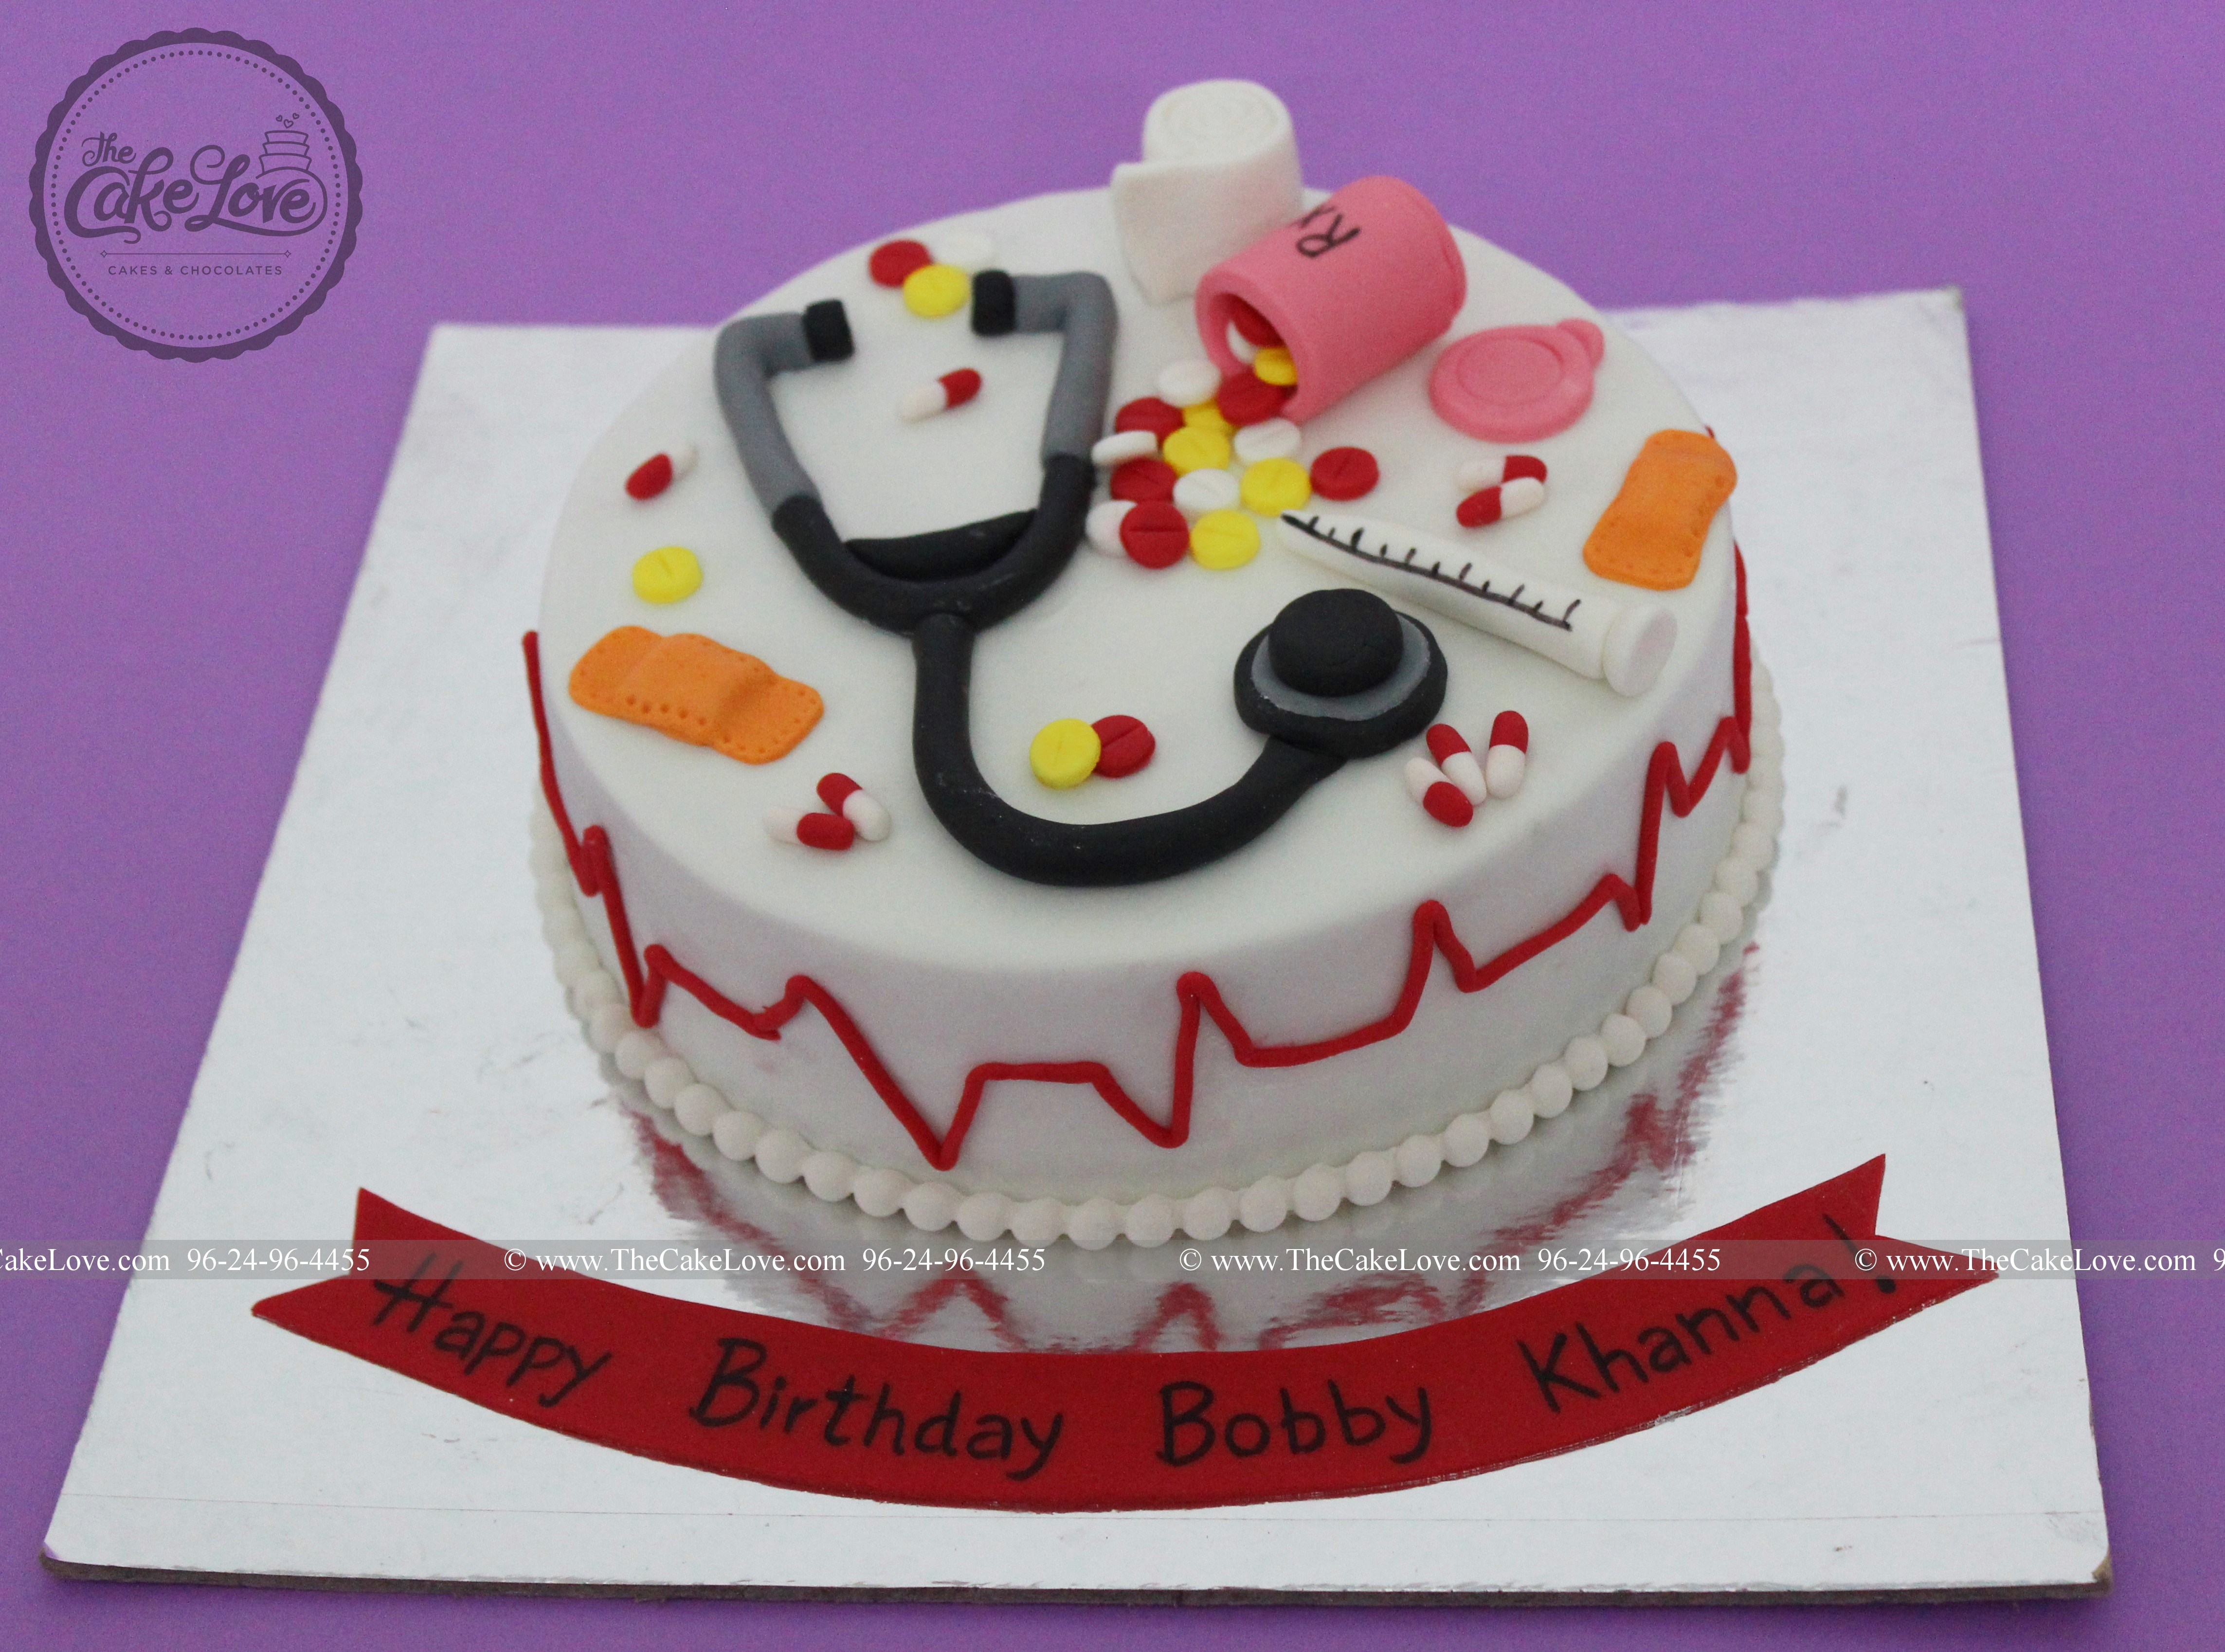 TheCakeLove.com- Themed Cakes,Cupcakes at The Cake Love in Vadodara